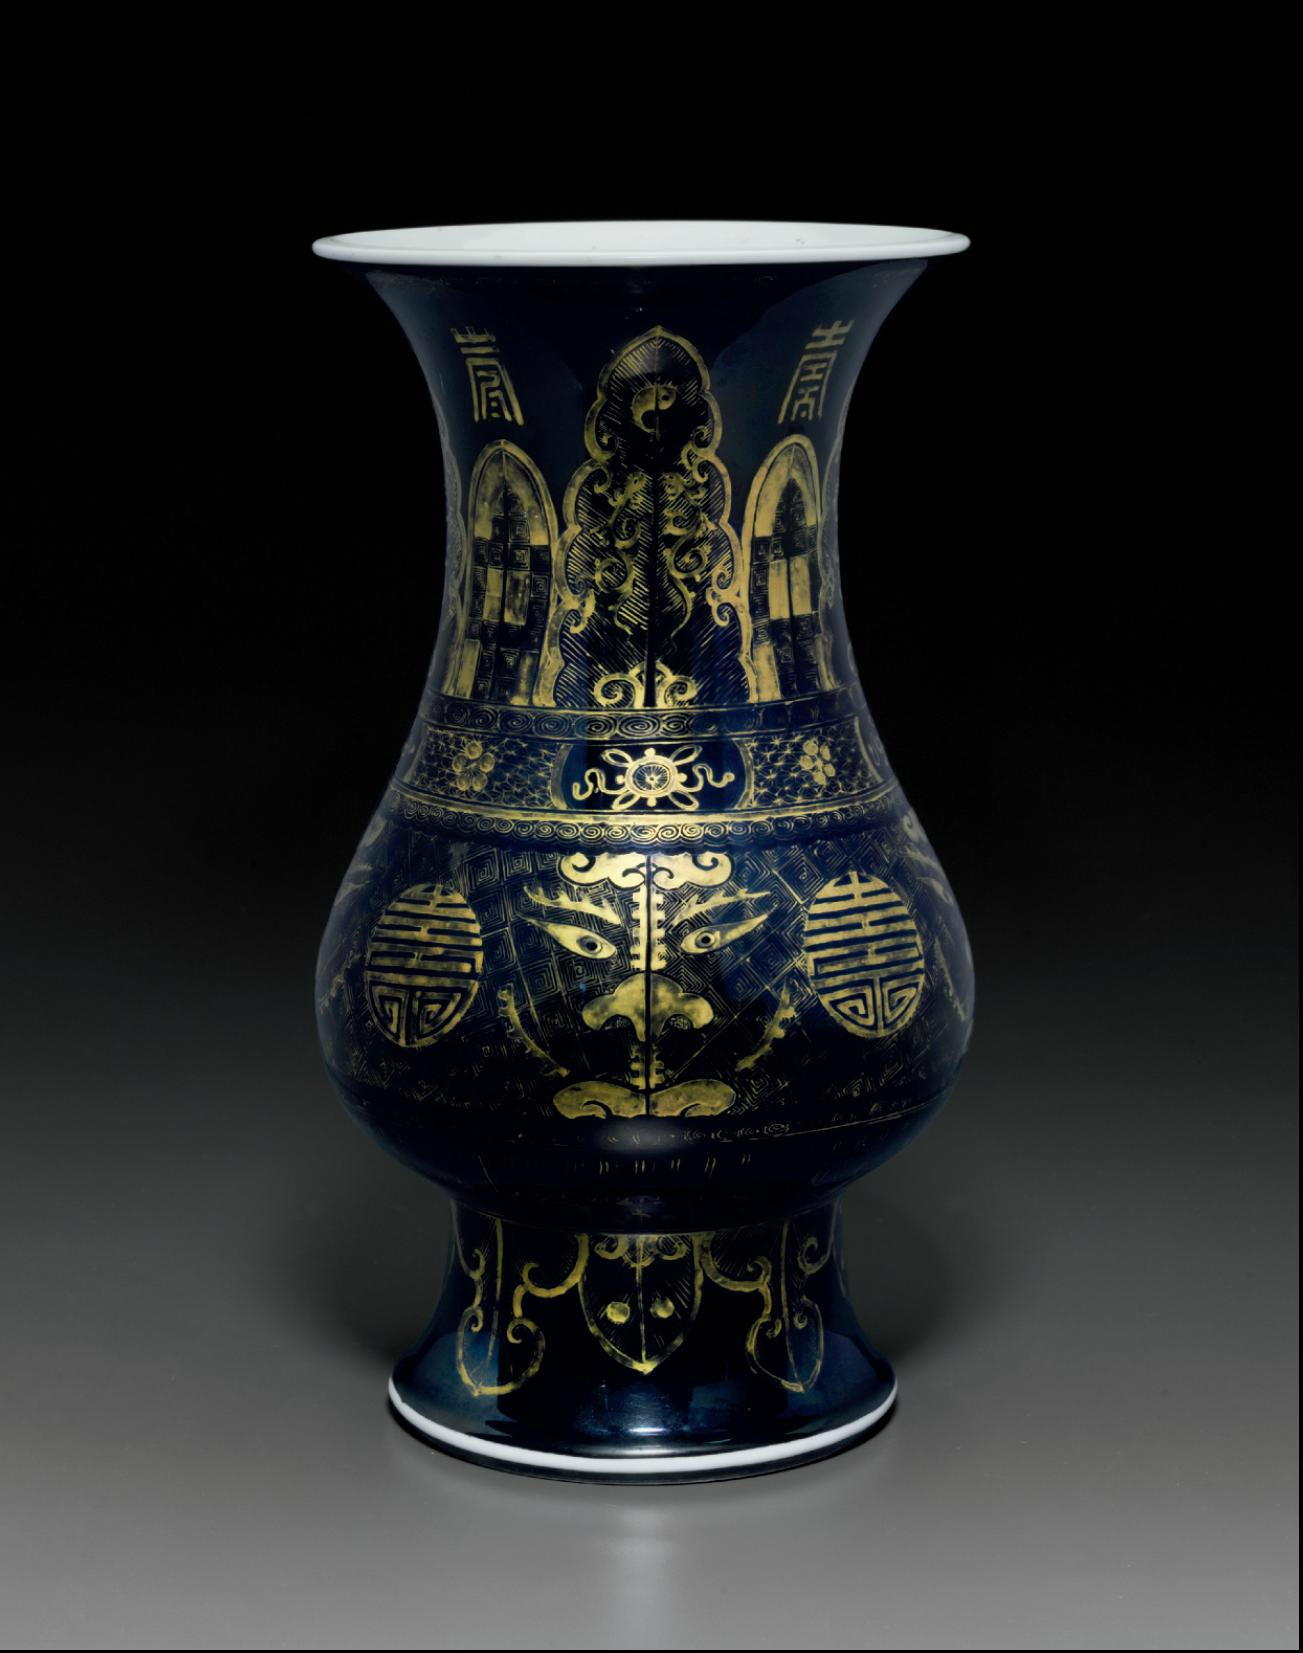 A rare gilt-decorated black-glazed pear-shaped vase, Kangxi period (1662-1722)